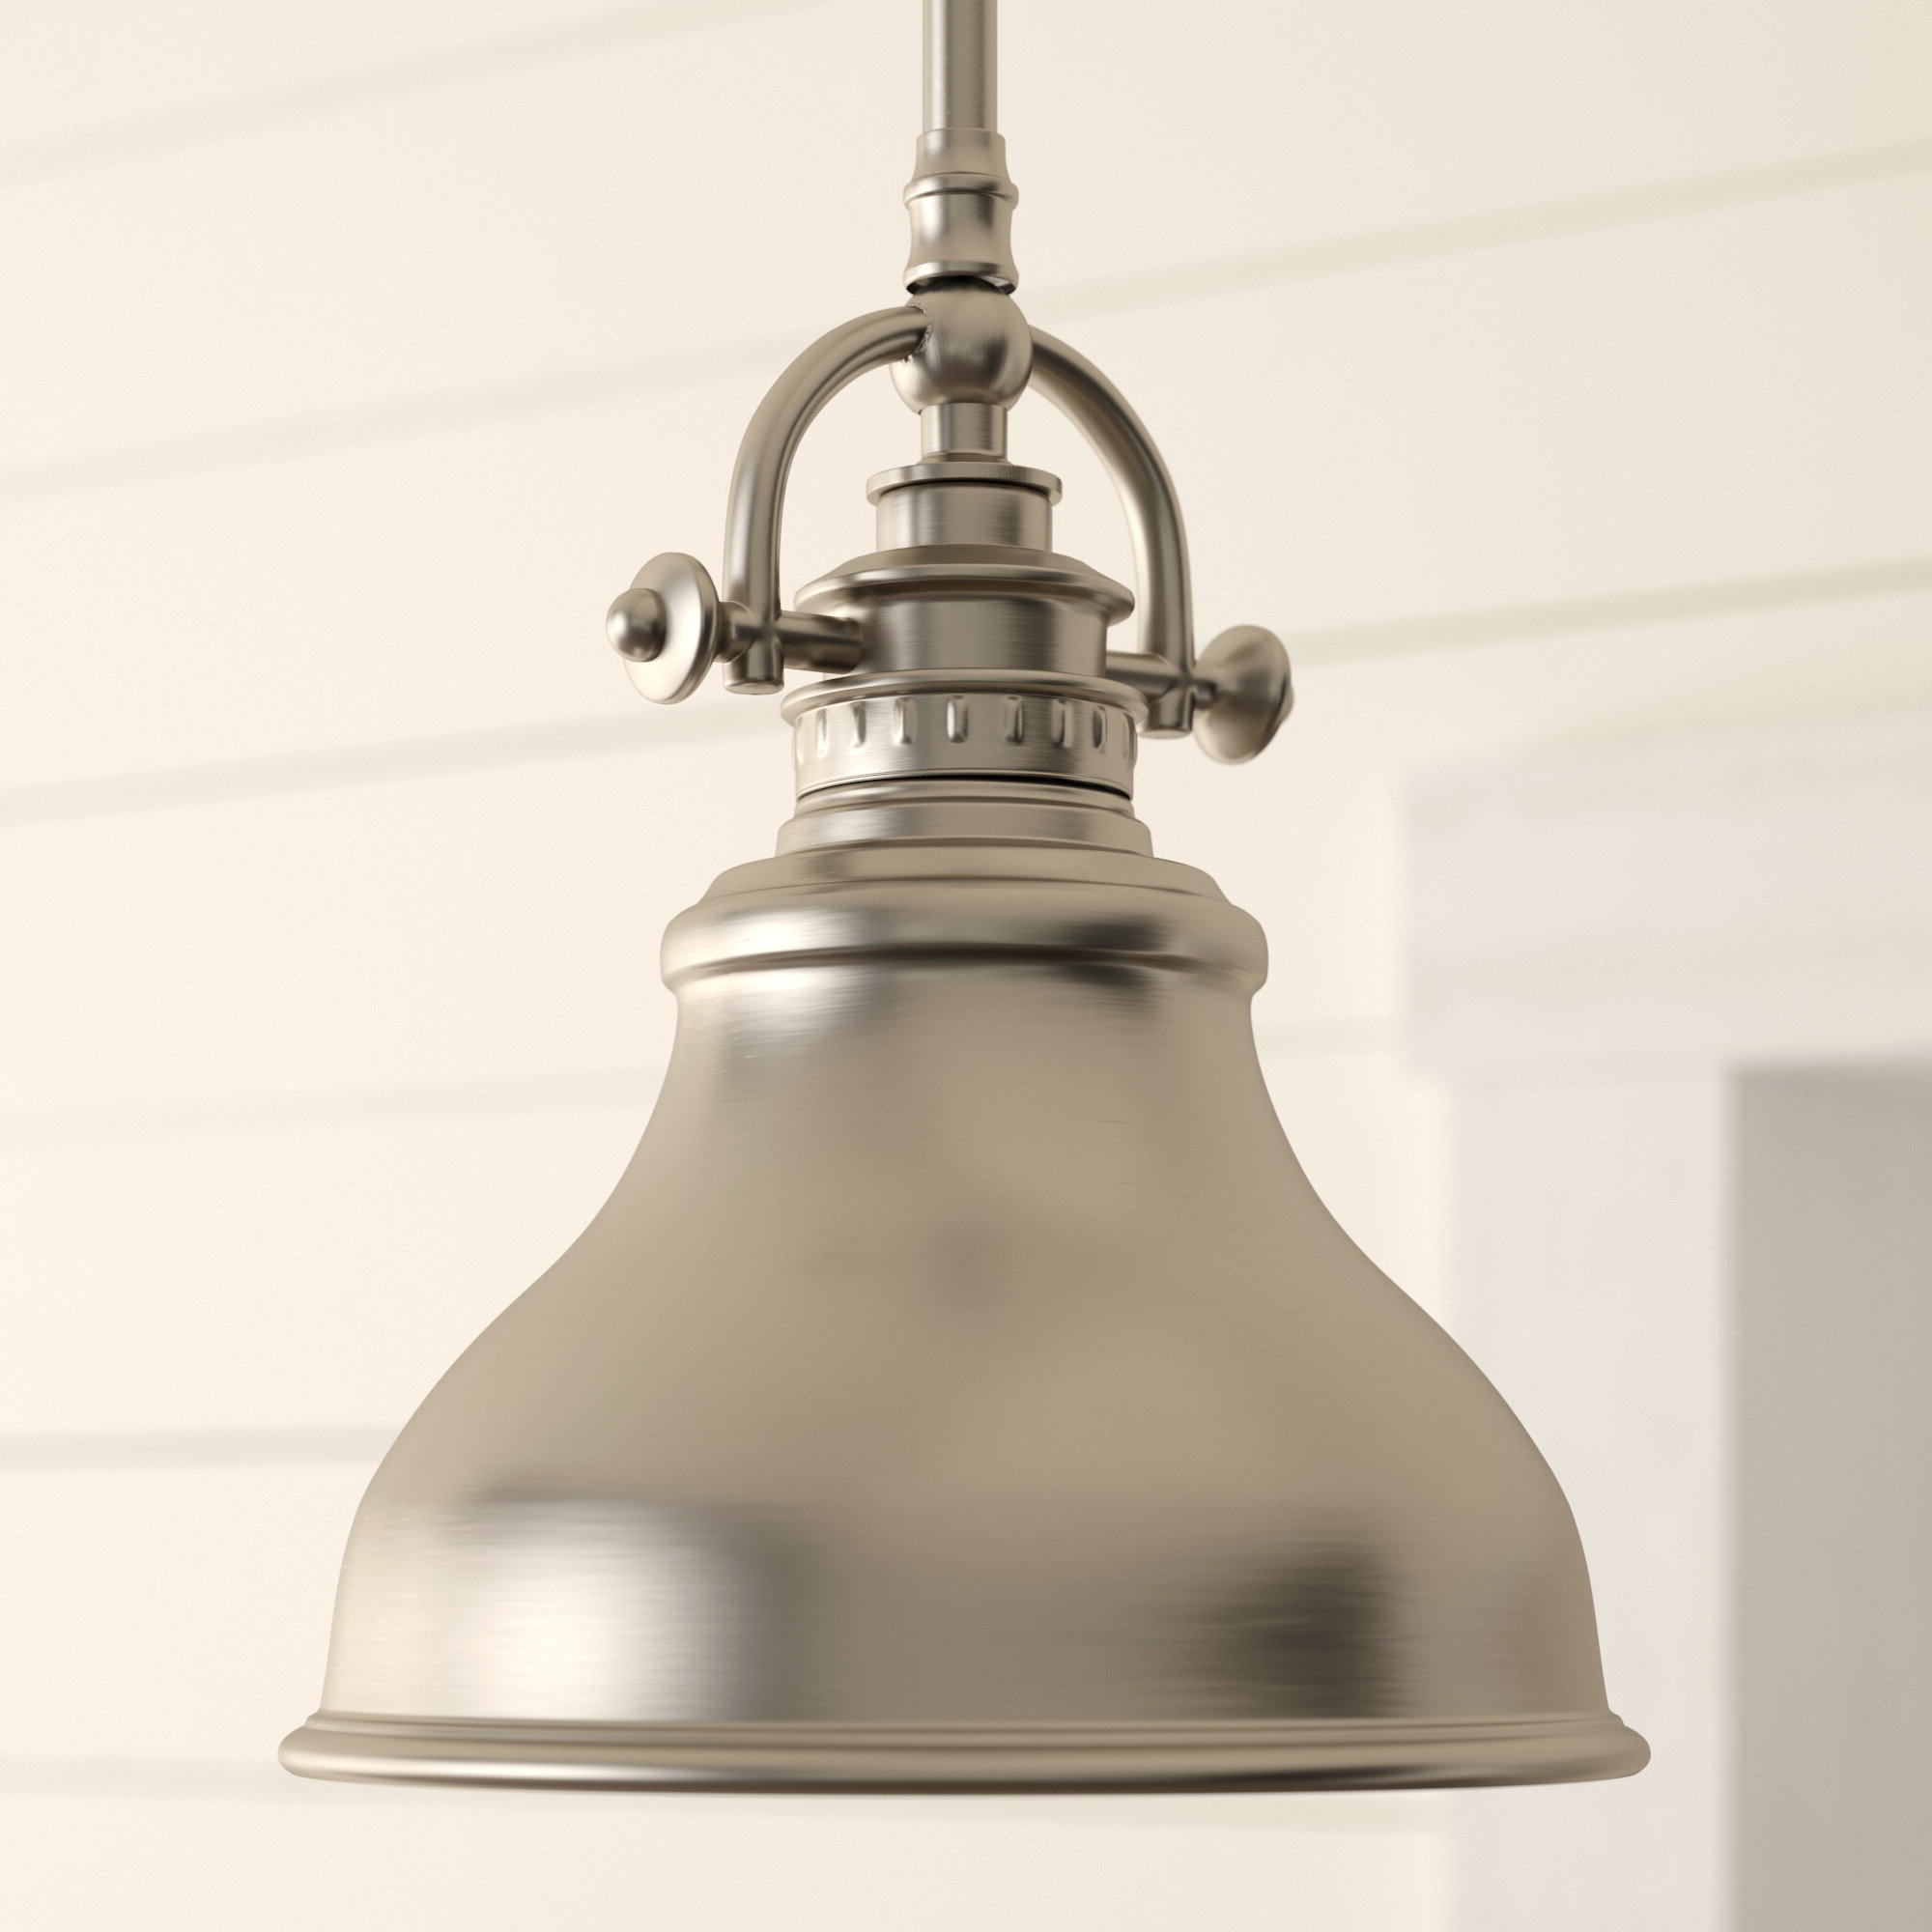 Beachcrest Home Mueller 1 Light Single Dome Pendant Regarding Latest Mueller 1 Light Single Dome Pendants (Gallery 5 of 20)